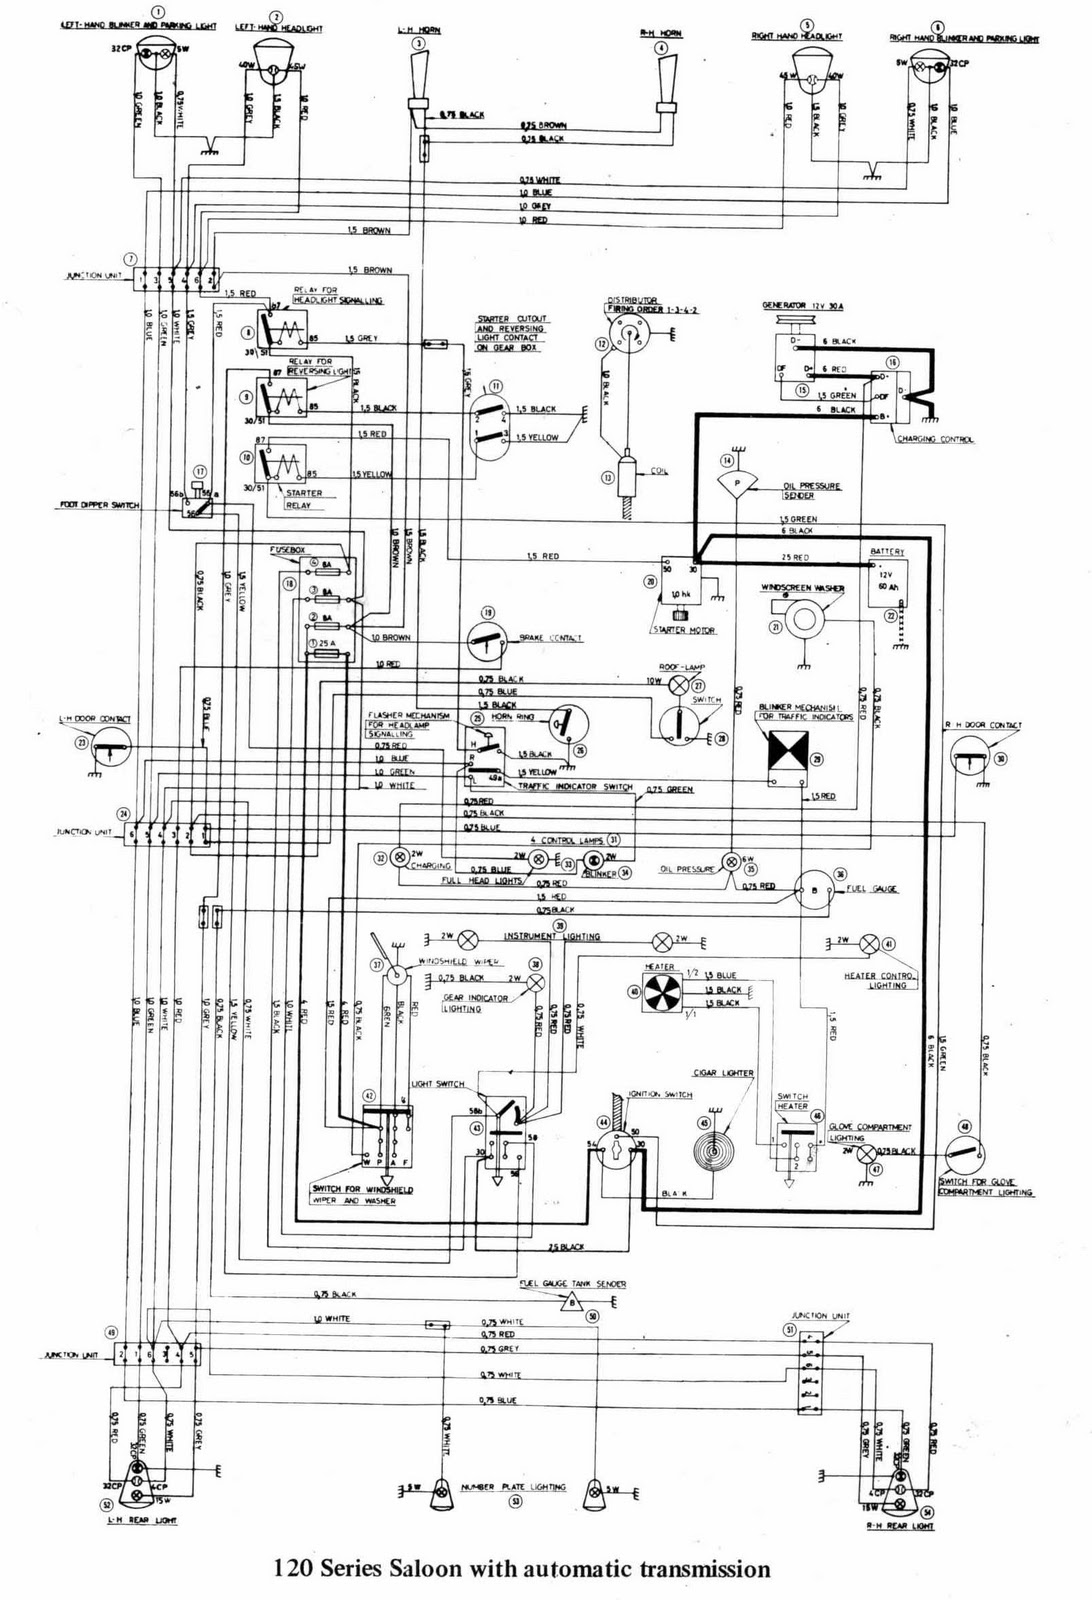 small resolution of volvo fh radio wiring diagram best 2005 volvo truck wiring diagrams contemporary electrical